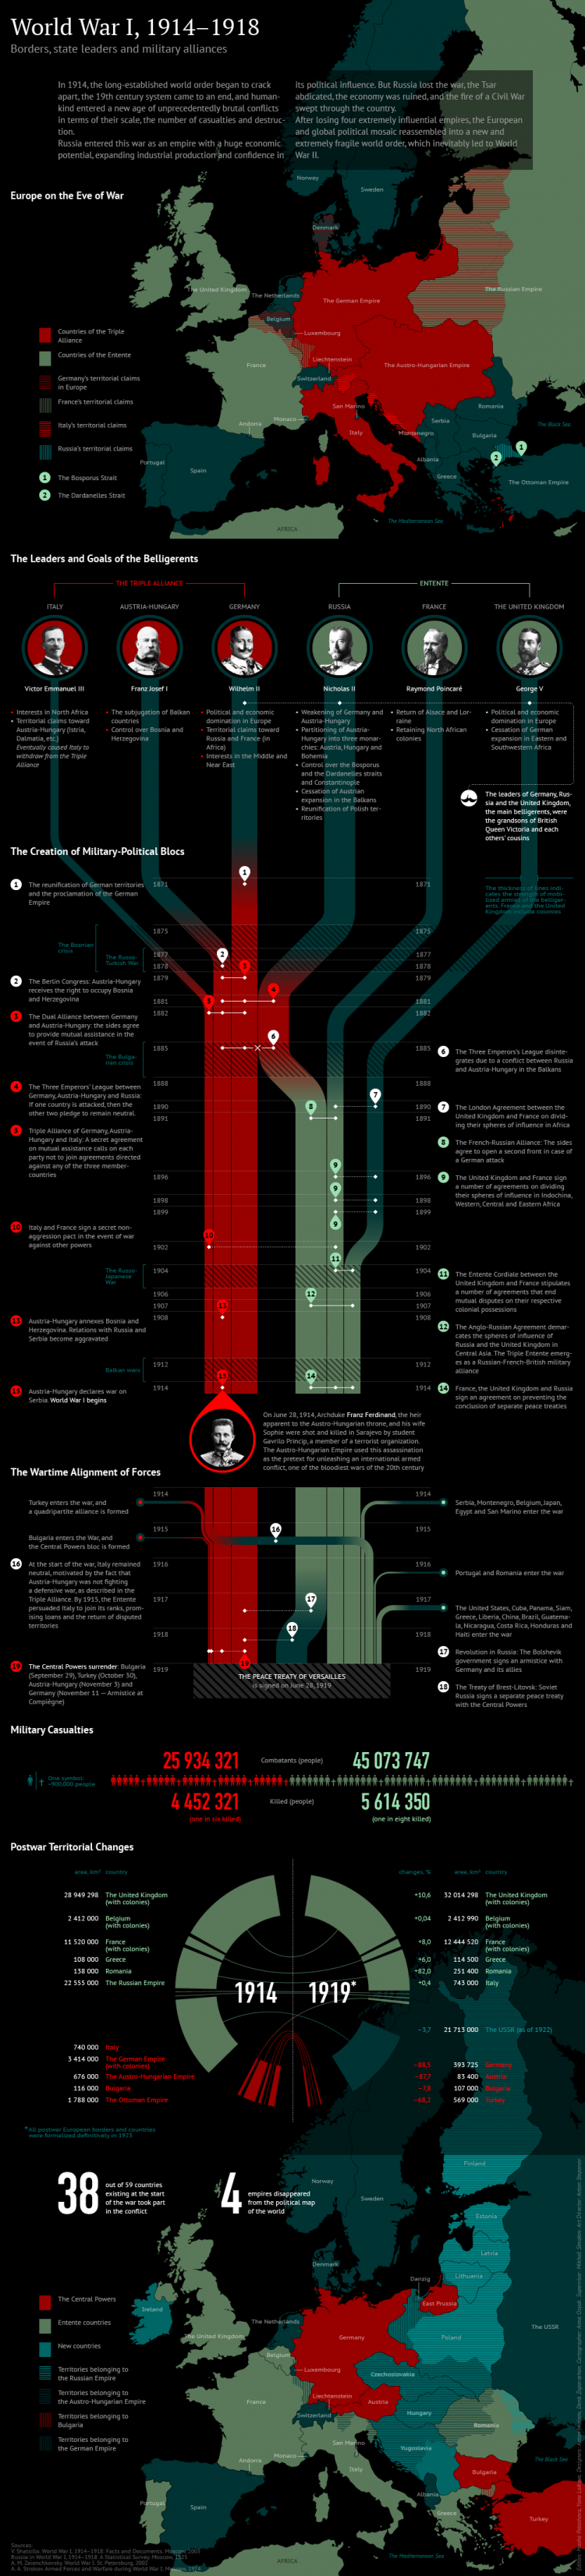 World War I, 1914-1918, Infographic by RIA Novosti